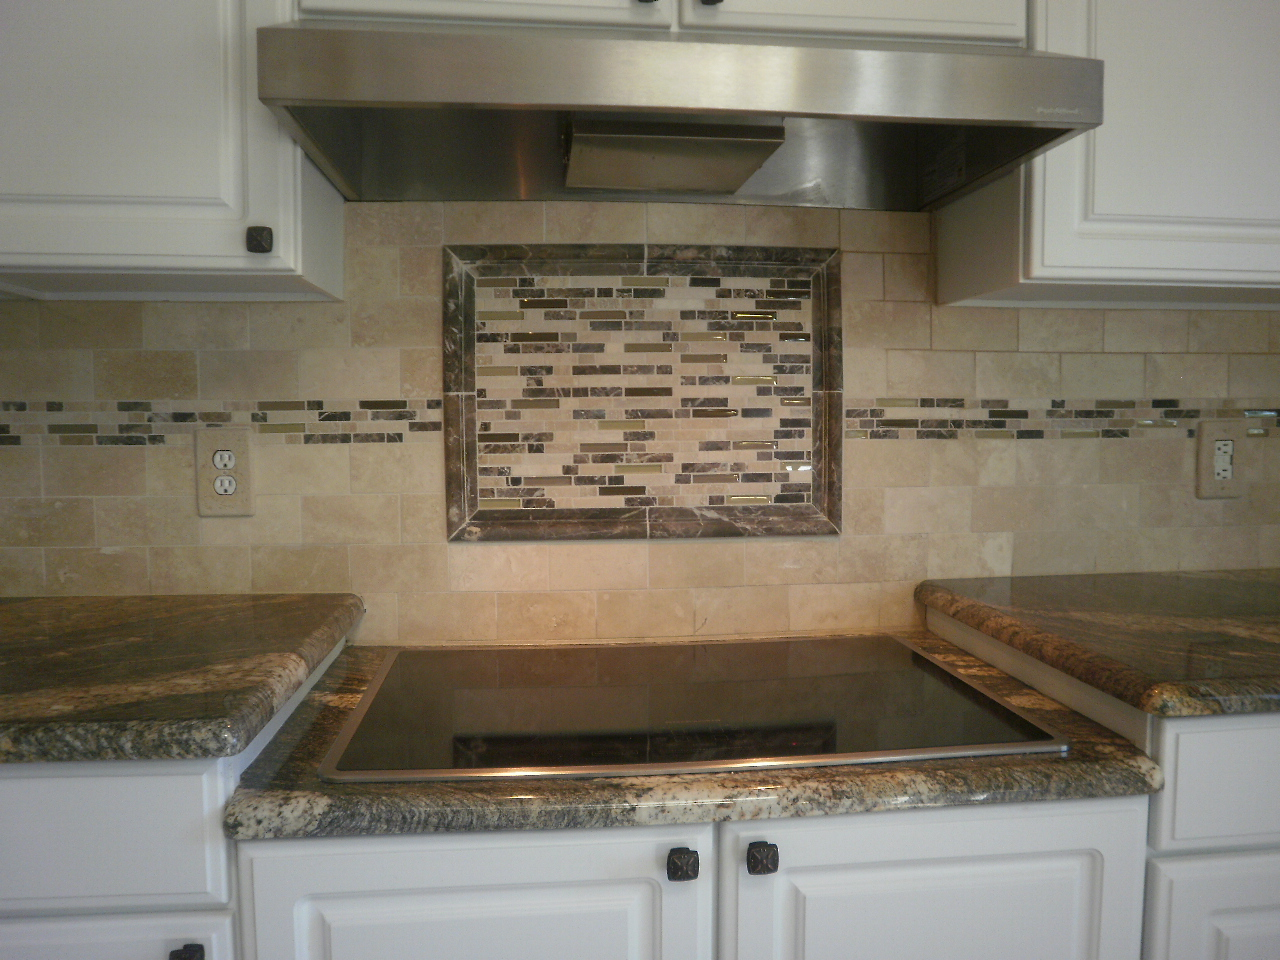 Integrity installations a division of front for Kitchen backsplash ideas